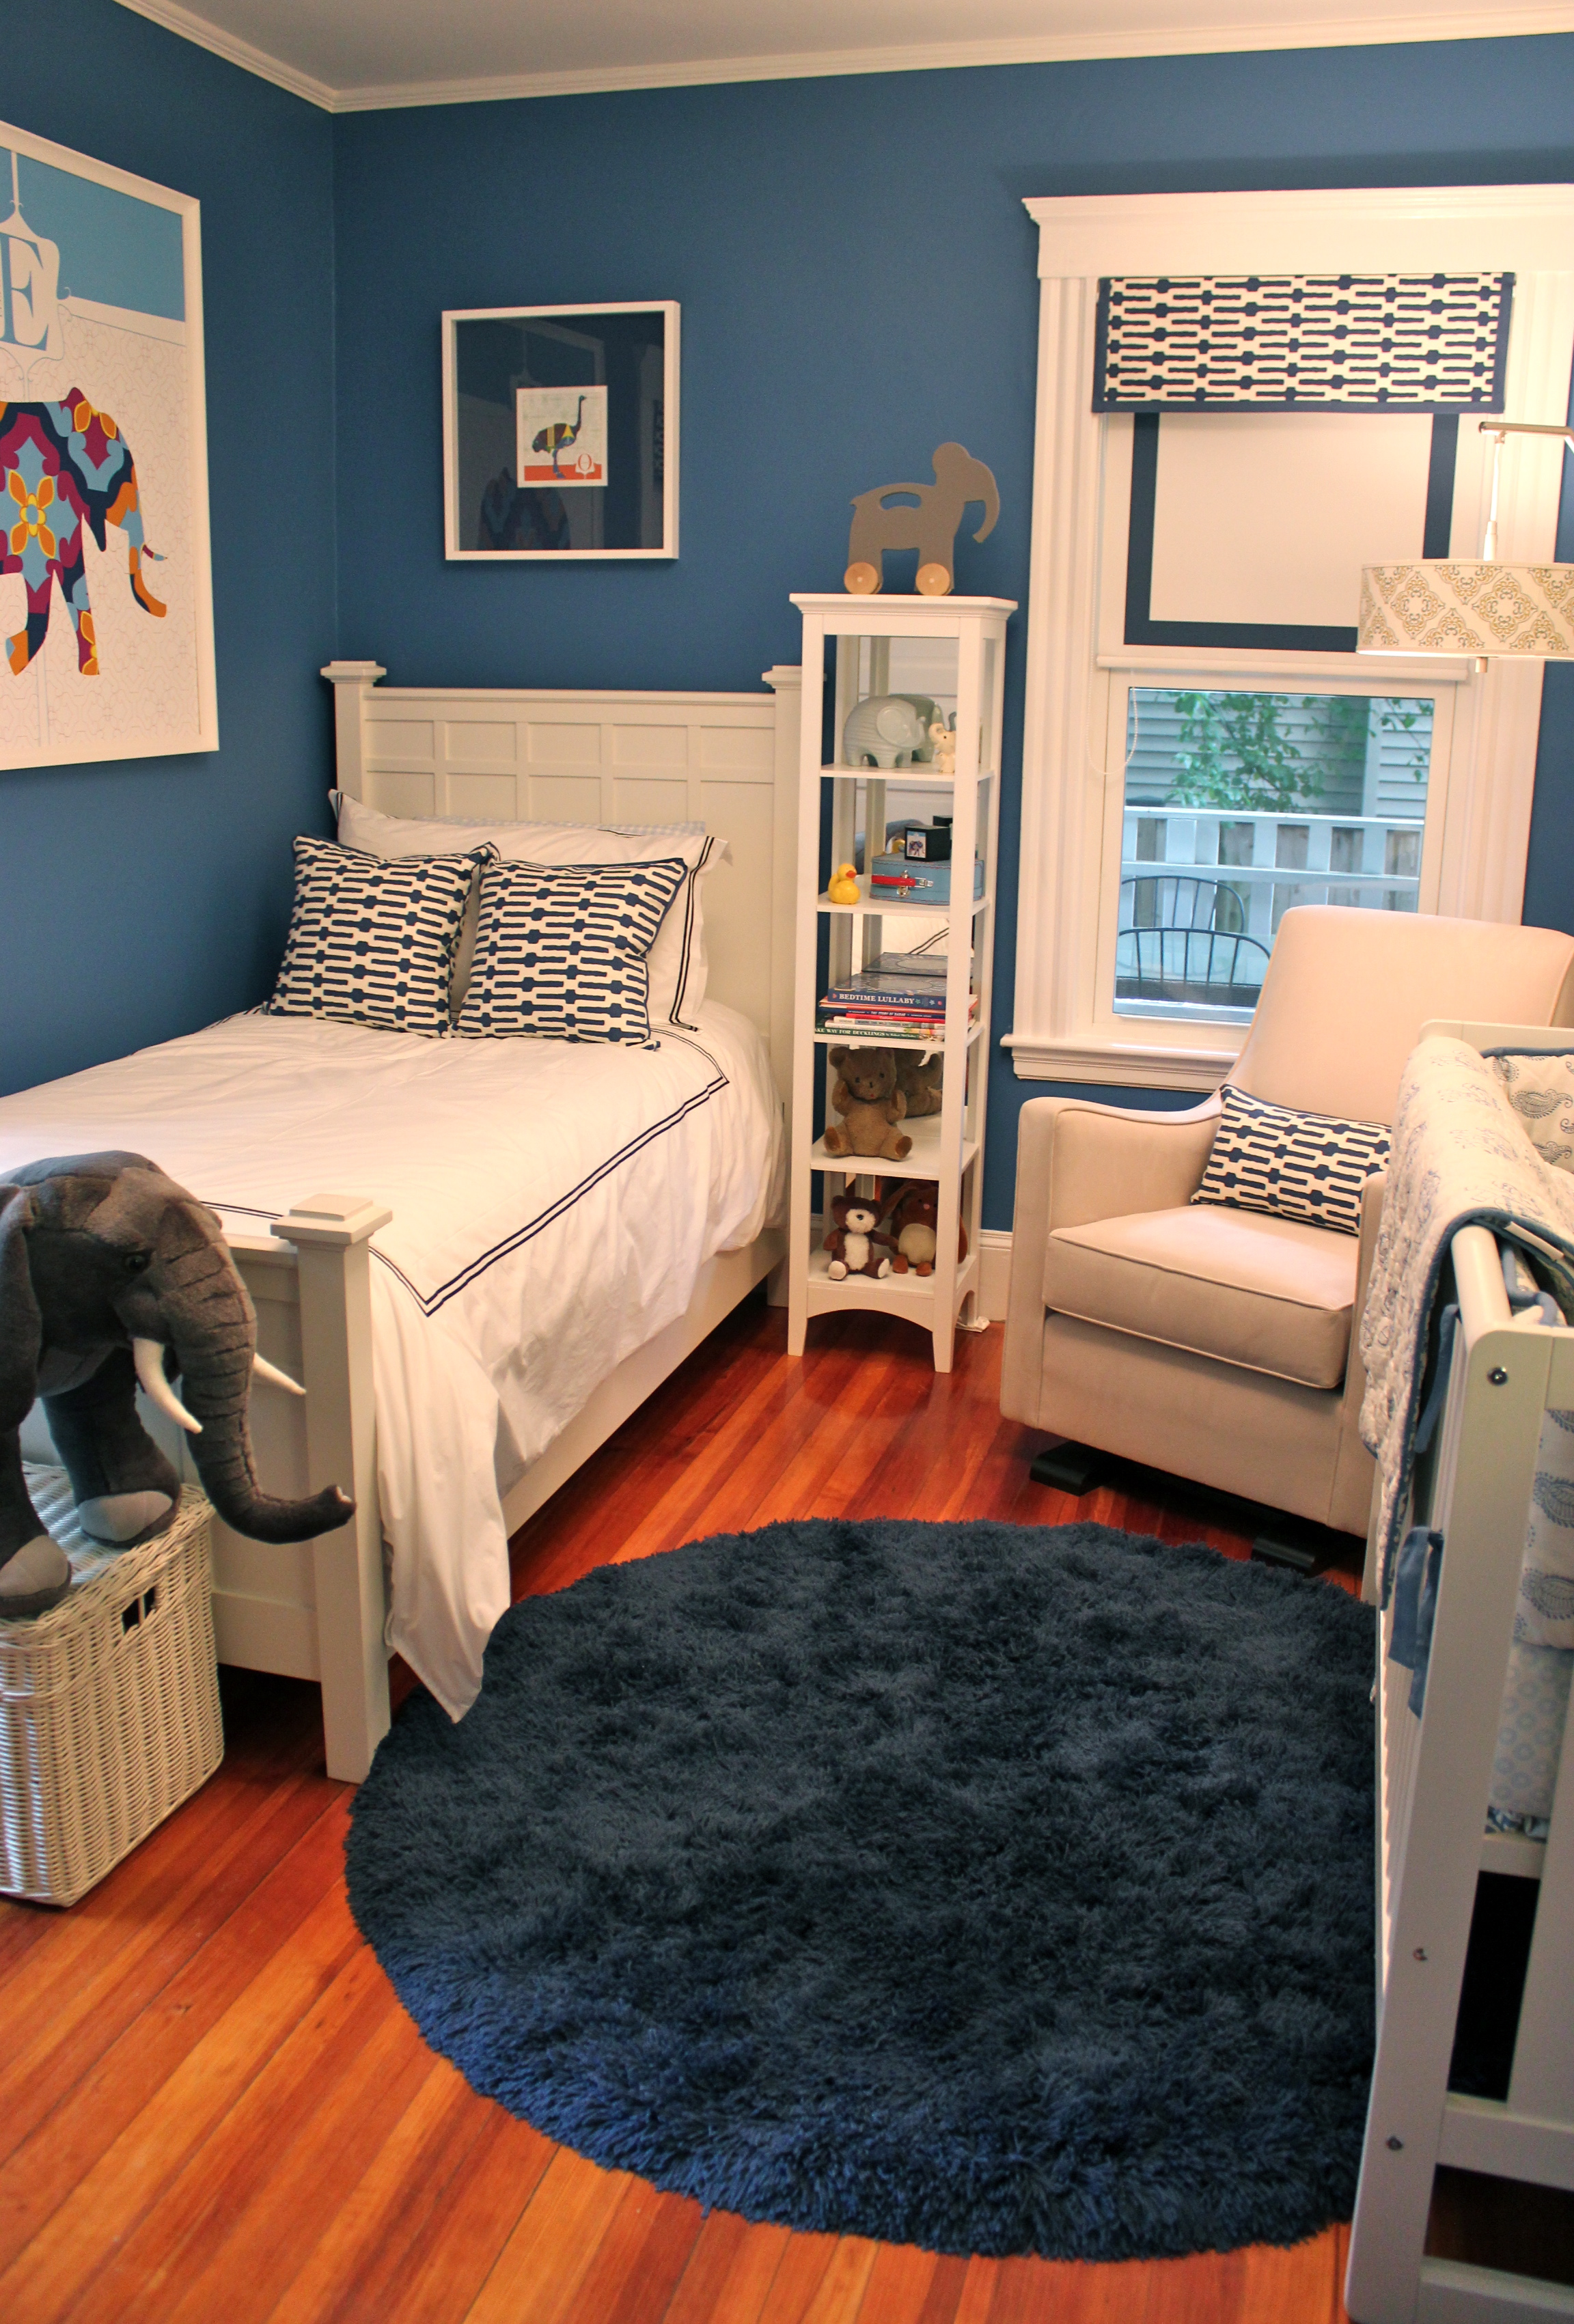 A Room for Bebe | Style Girl on Teen Small Bedroom Ideas  id=60350